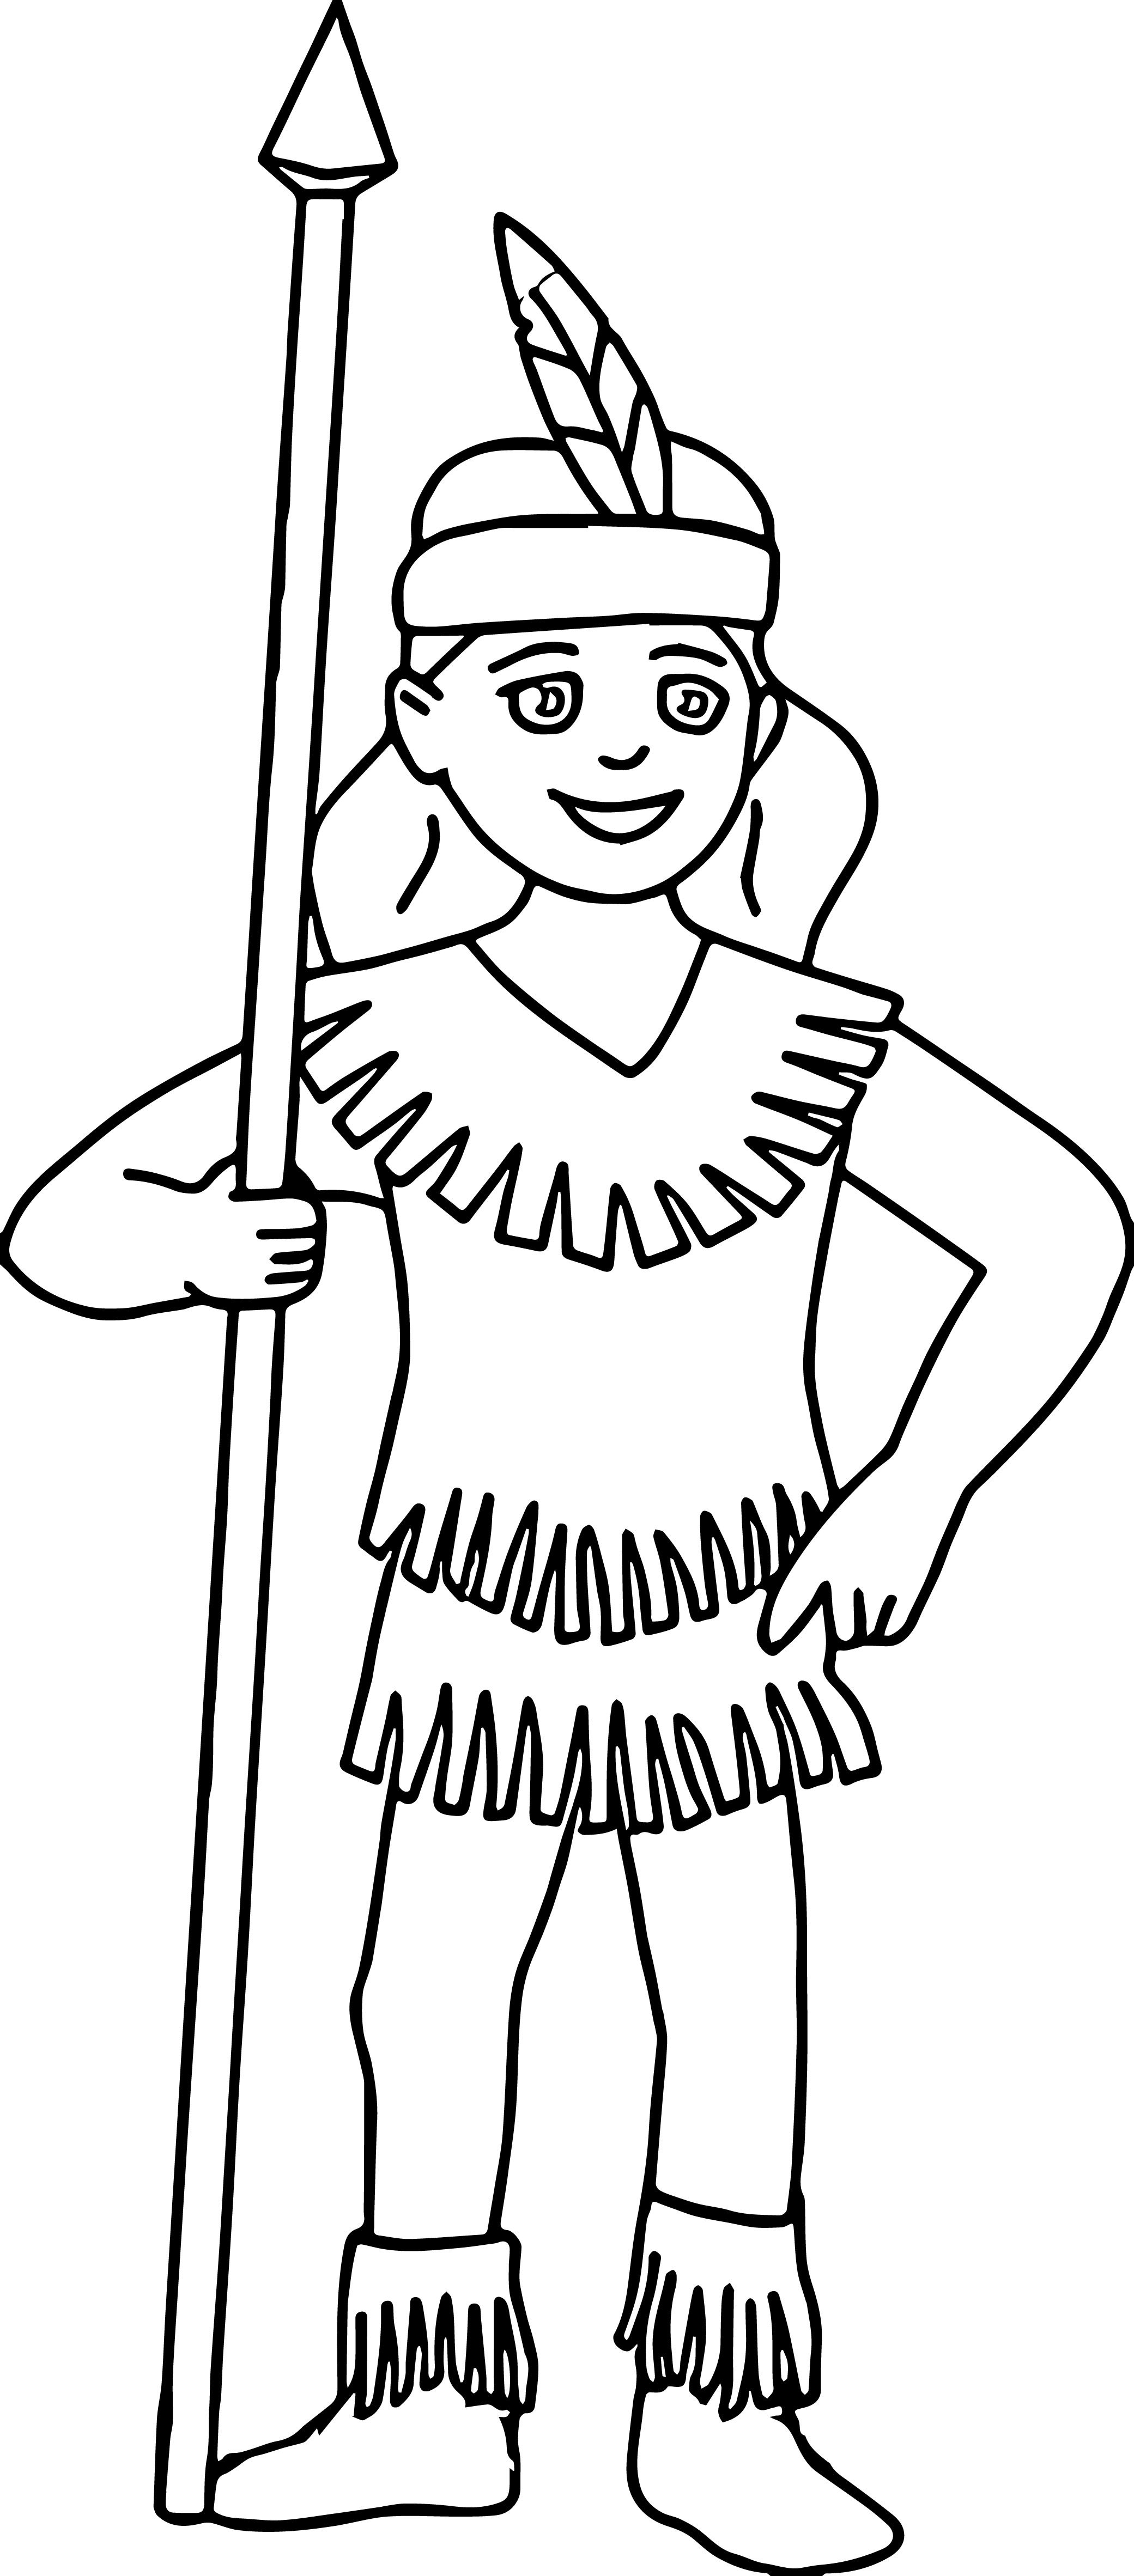 2081x4729 Native American Indian Girl Coloring Pages American Indian Girl